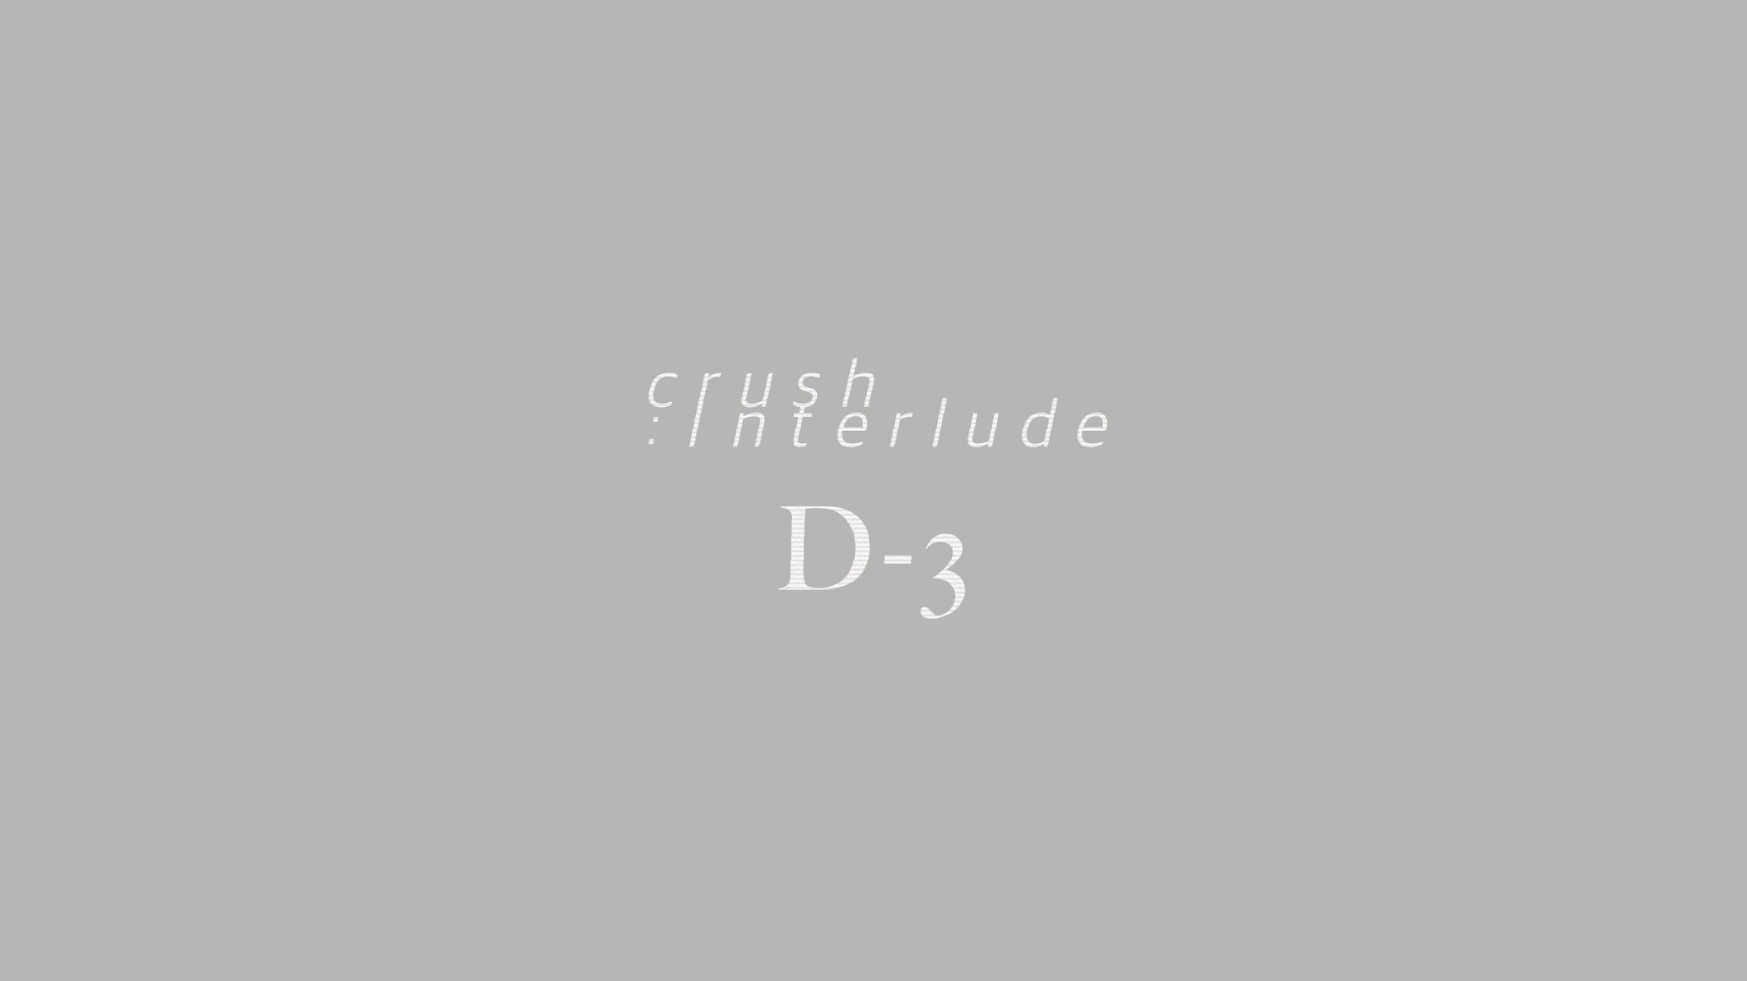 Crush [Interlude] D-3 2016. 05. 06. 12PM